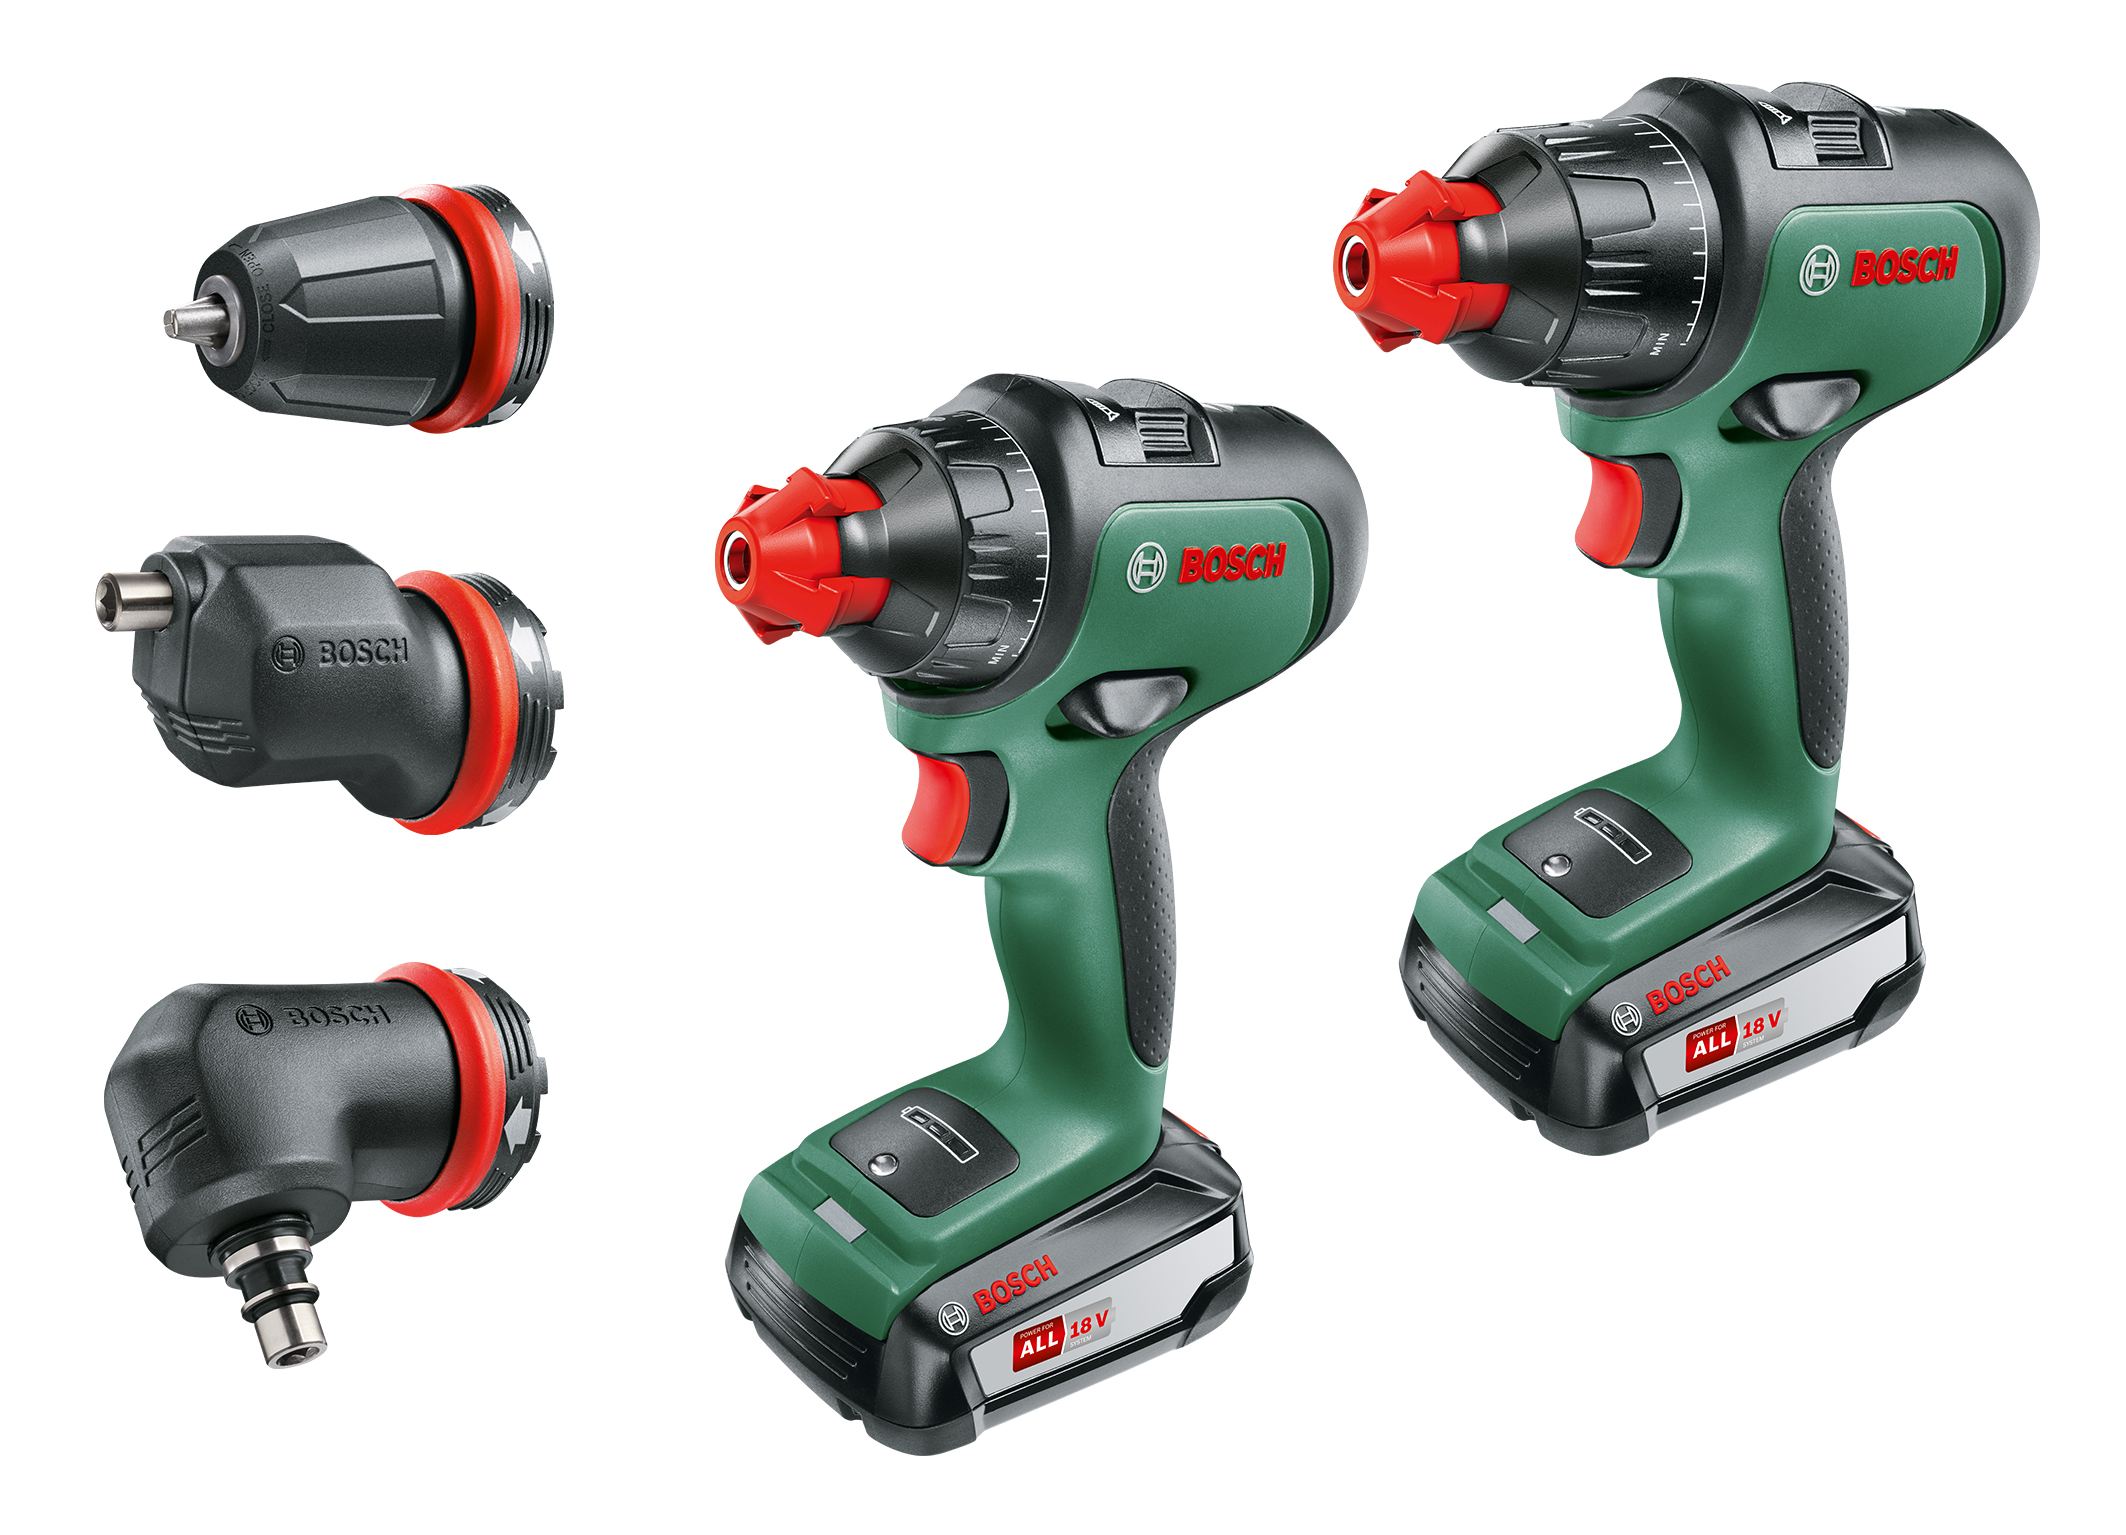 Cordless screwdrivers with intuitive operating concept: AdvancedDrill 18 and AdvancedImpact 18 from Bosch